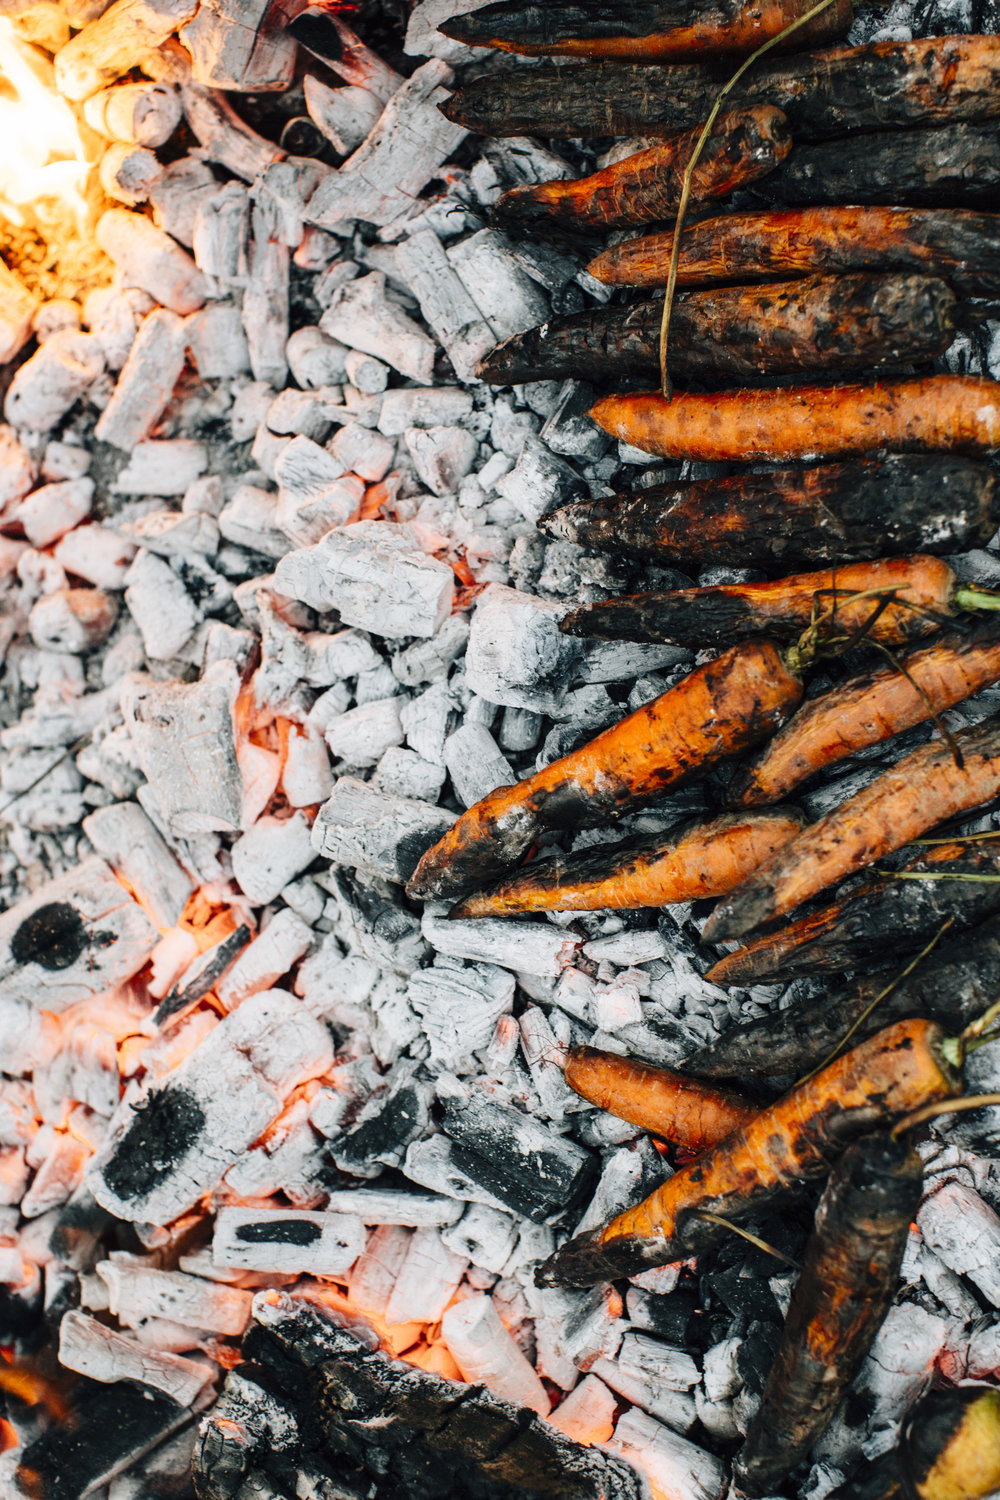 Fire Roasted Carrots on Coals Toronto Food photographer - Suech and Beck